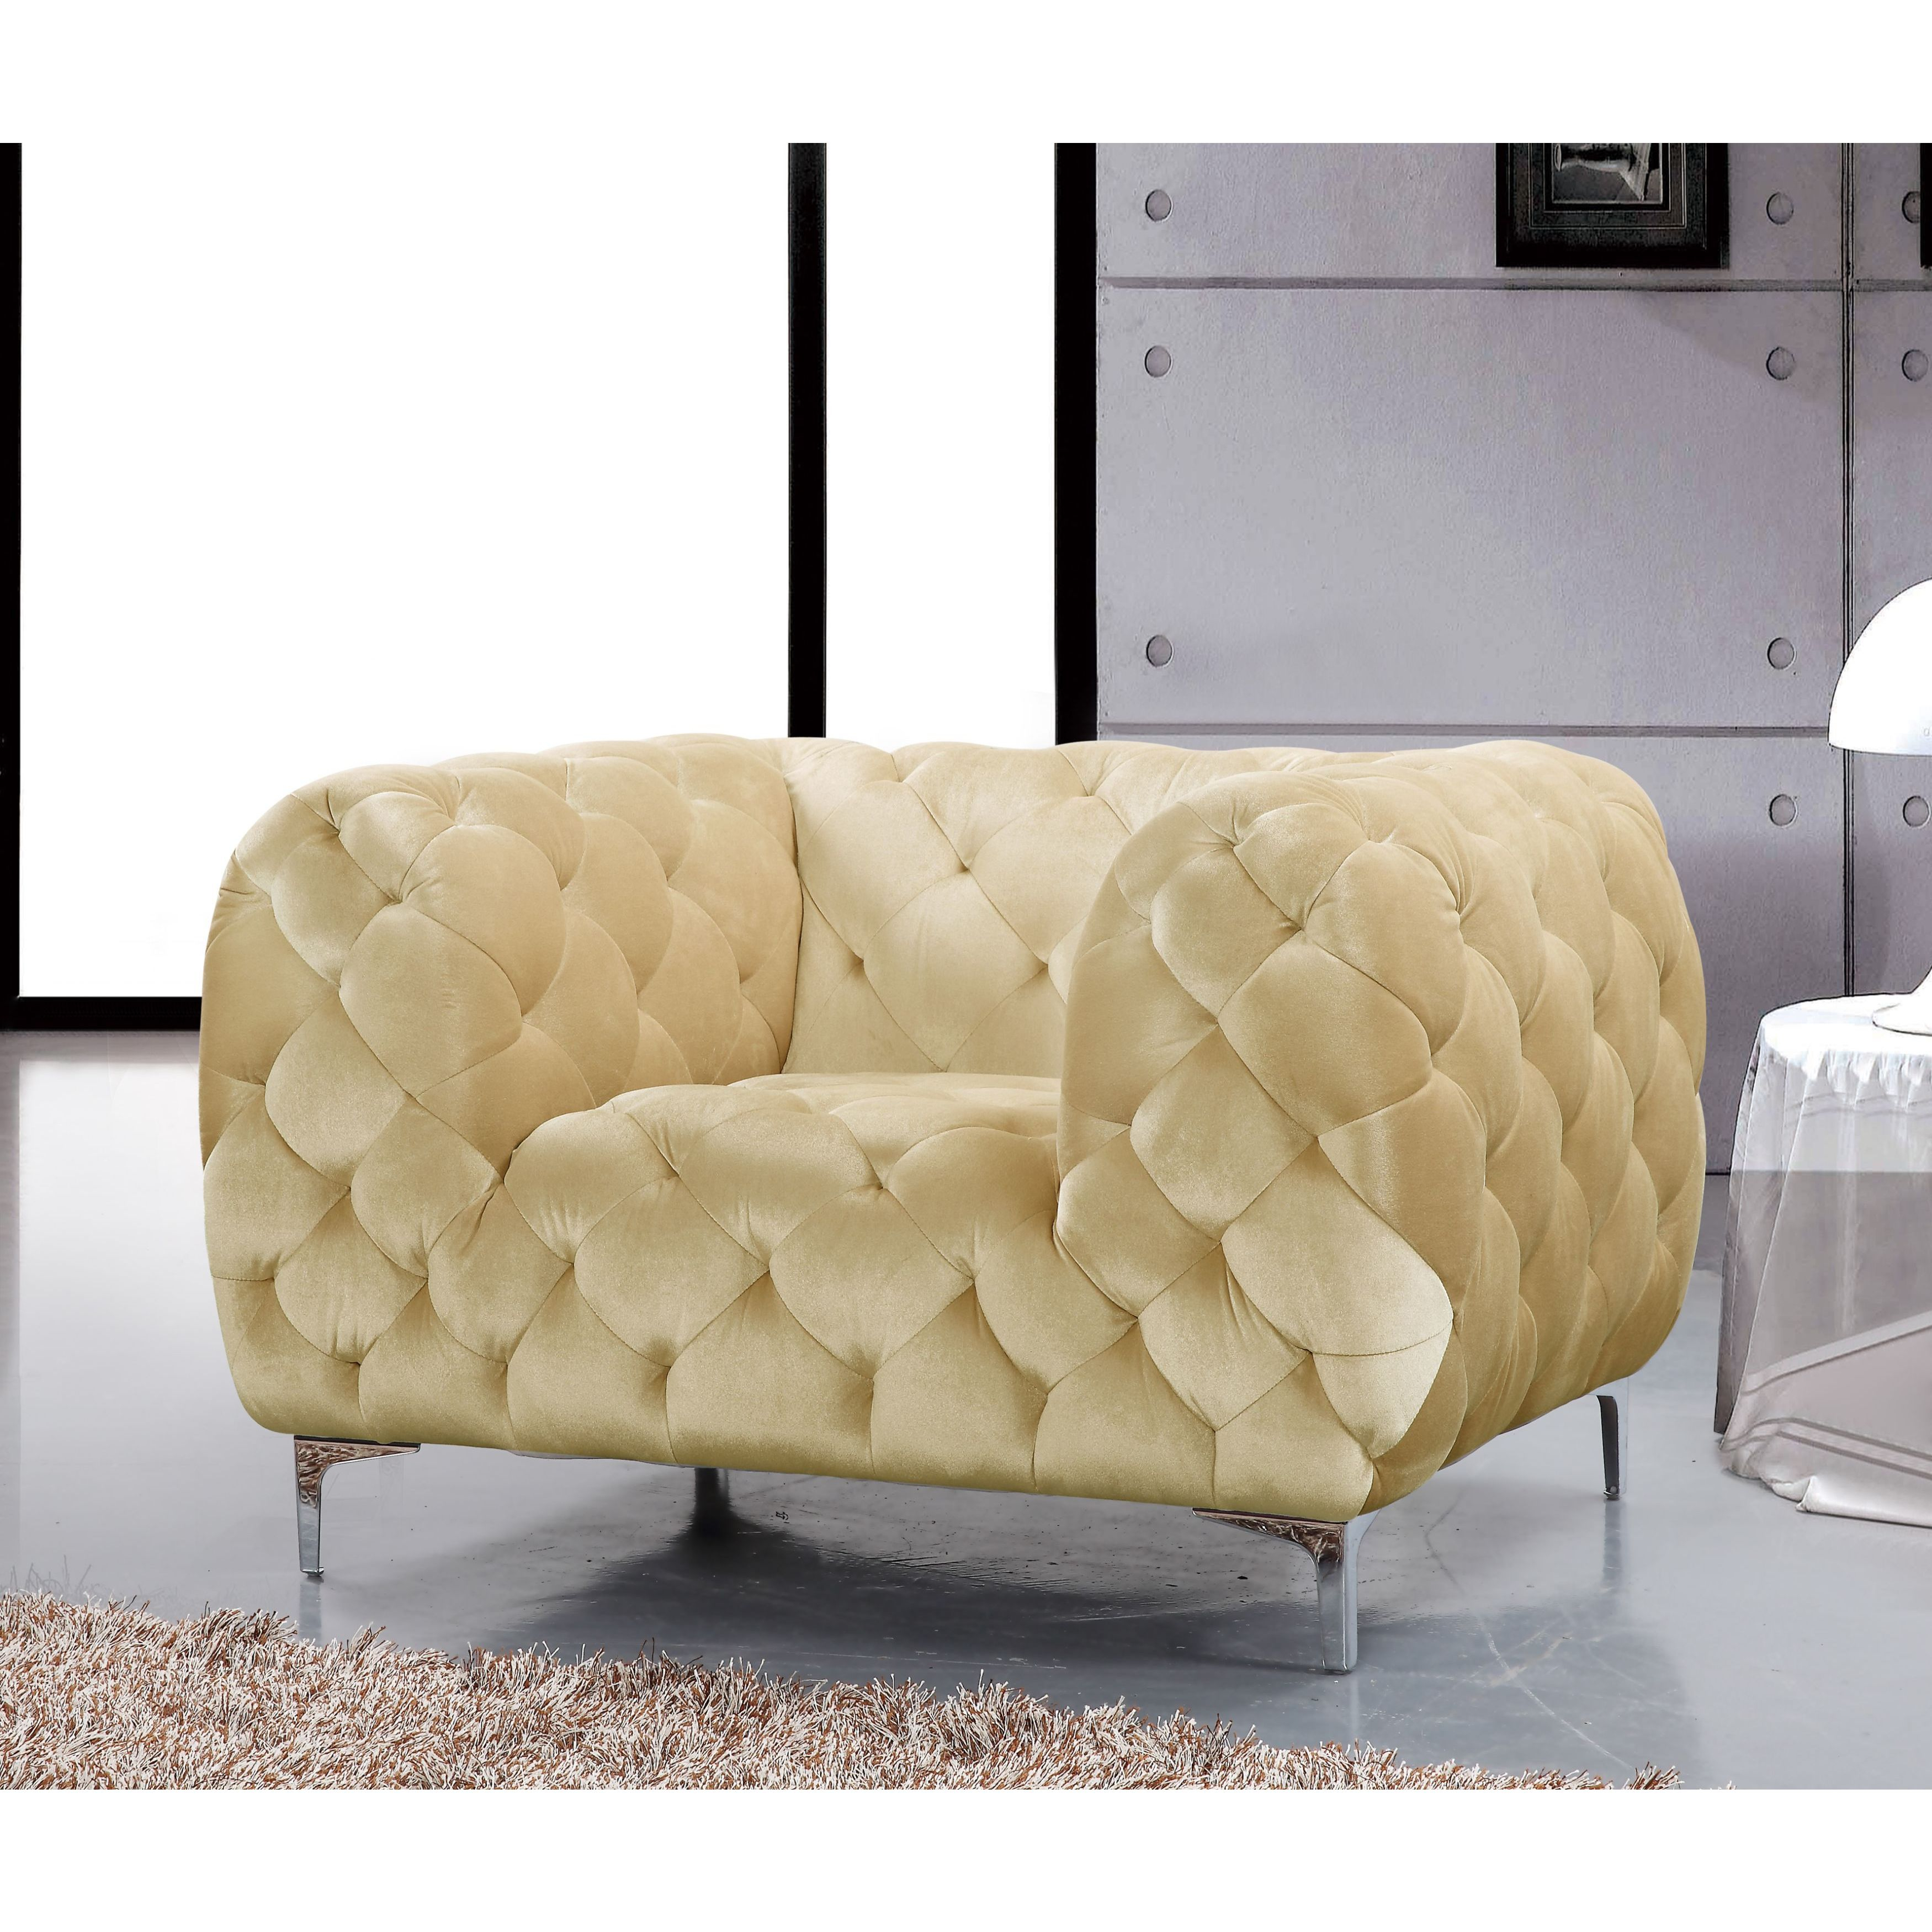 Shop Meridian Mercer Beige Velvet Tufted Chair – Free Shipping Today Intended For Mercer Foam Swivel Chairs (View 17 of 25)